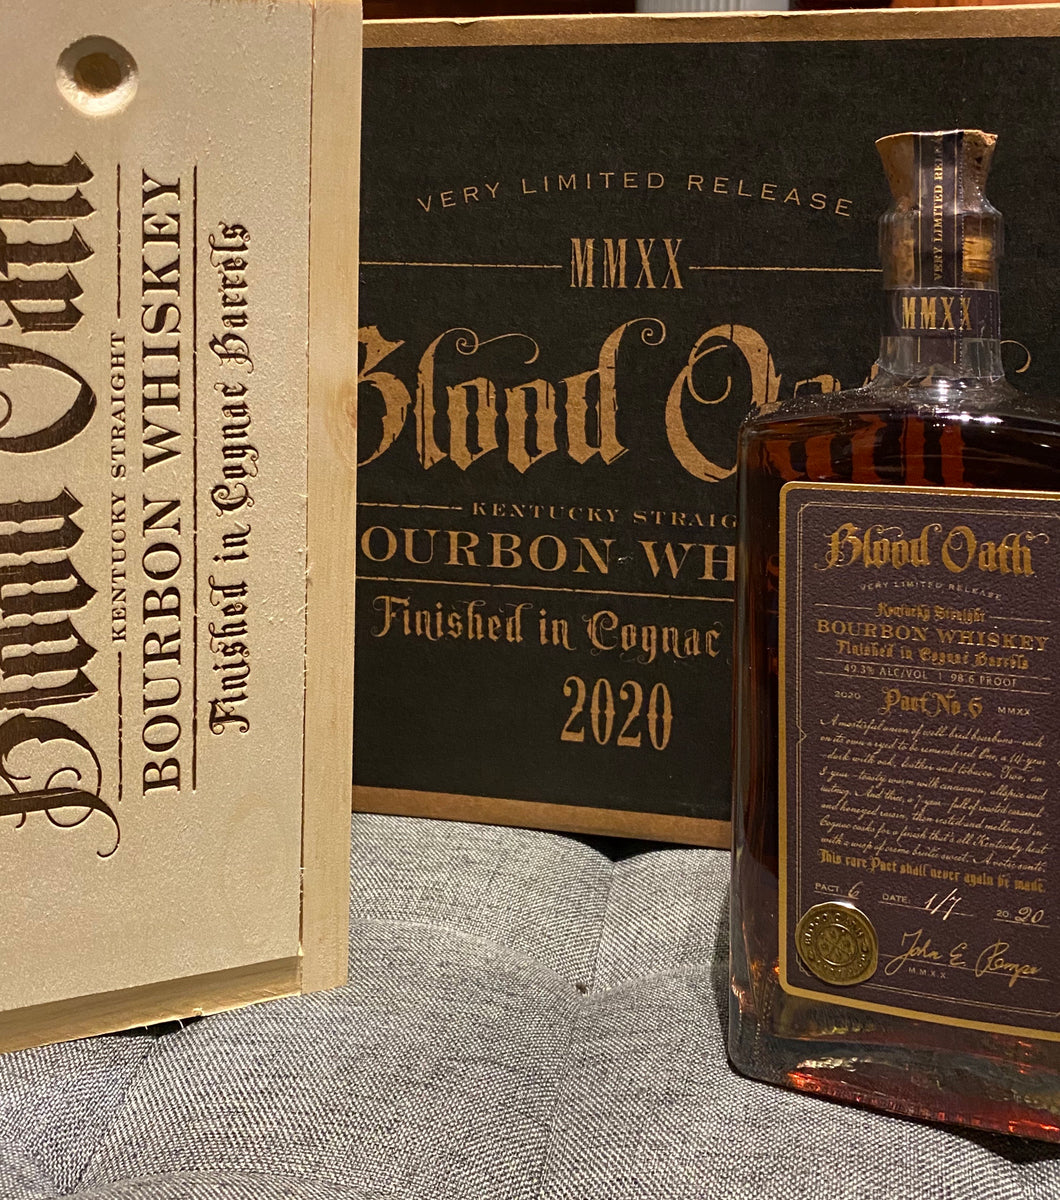 BLOOD OATH BOURBON 750ml